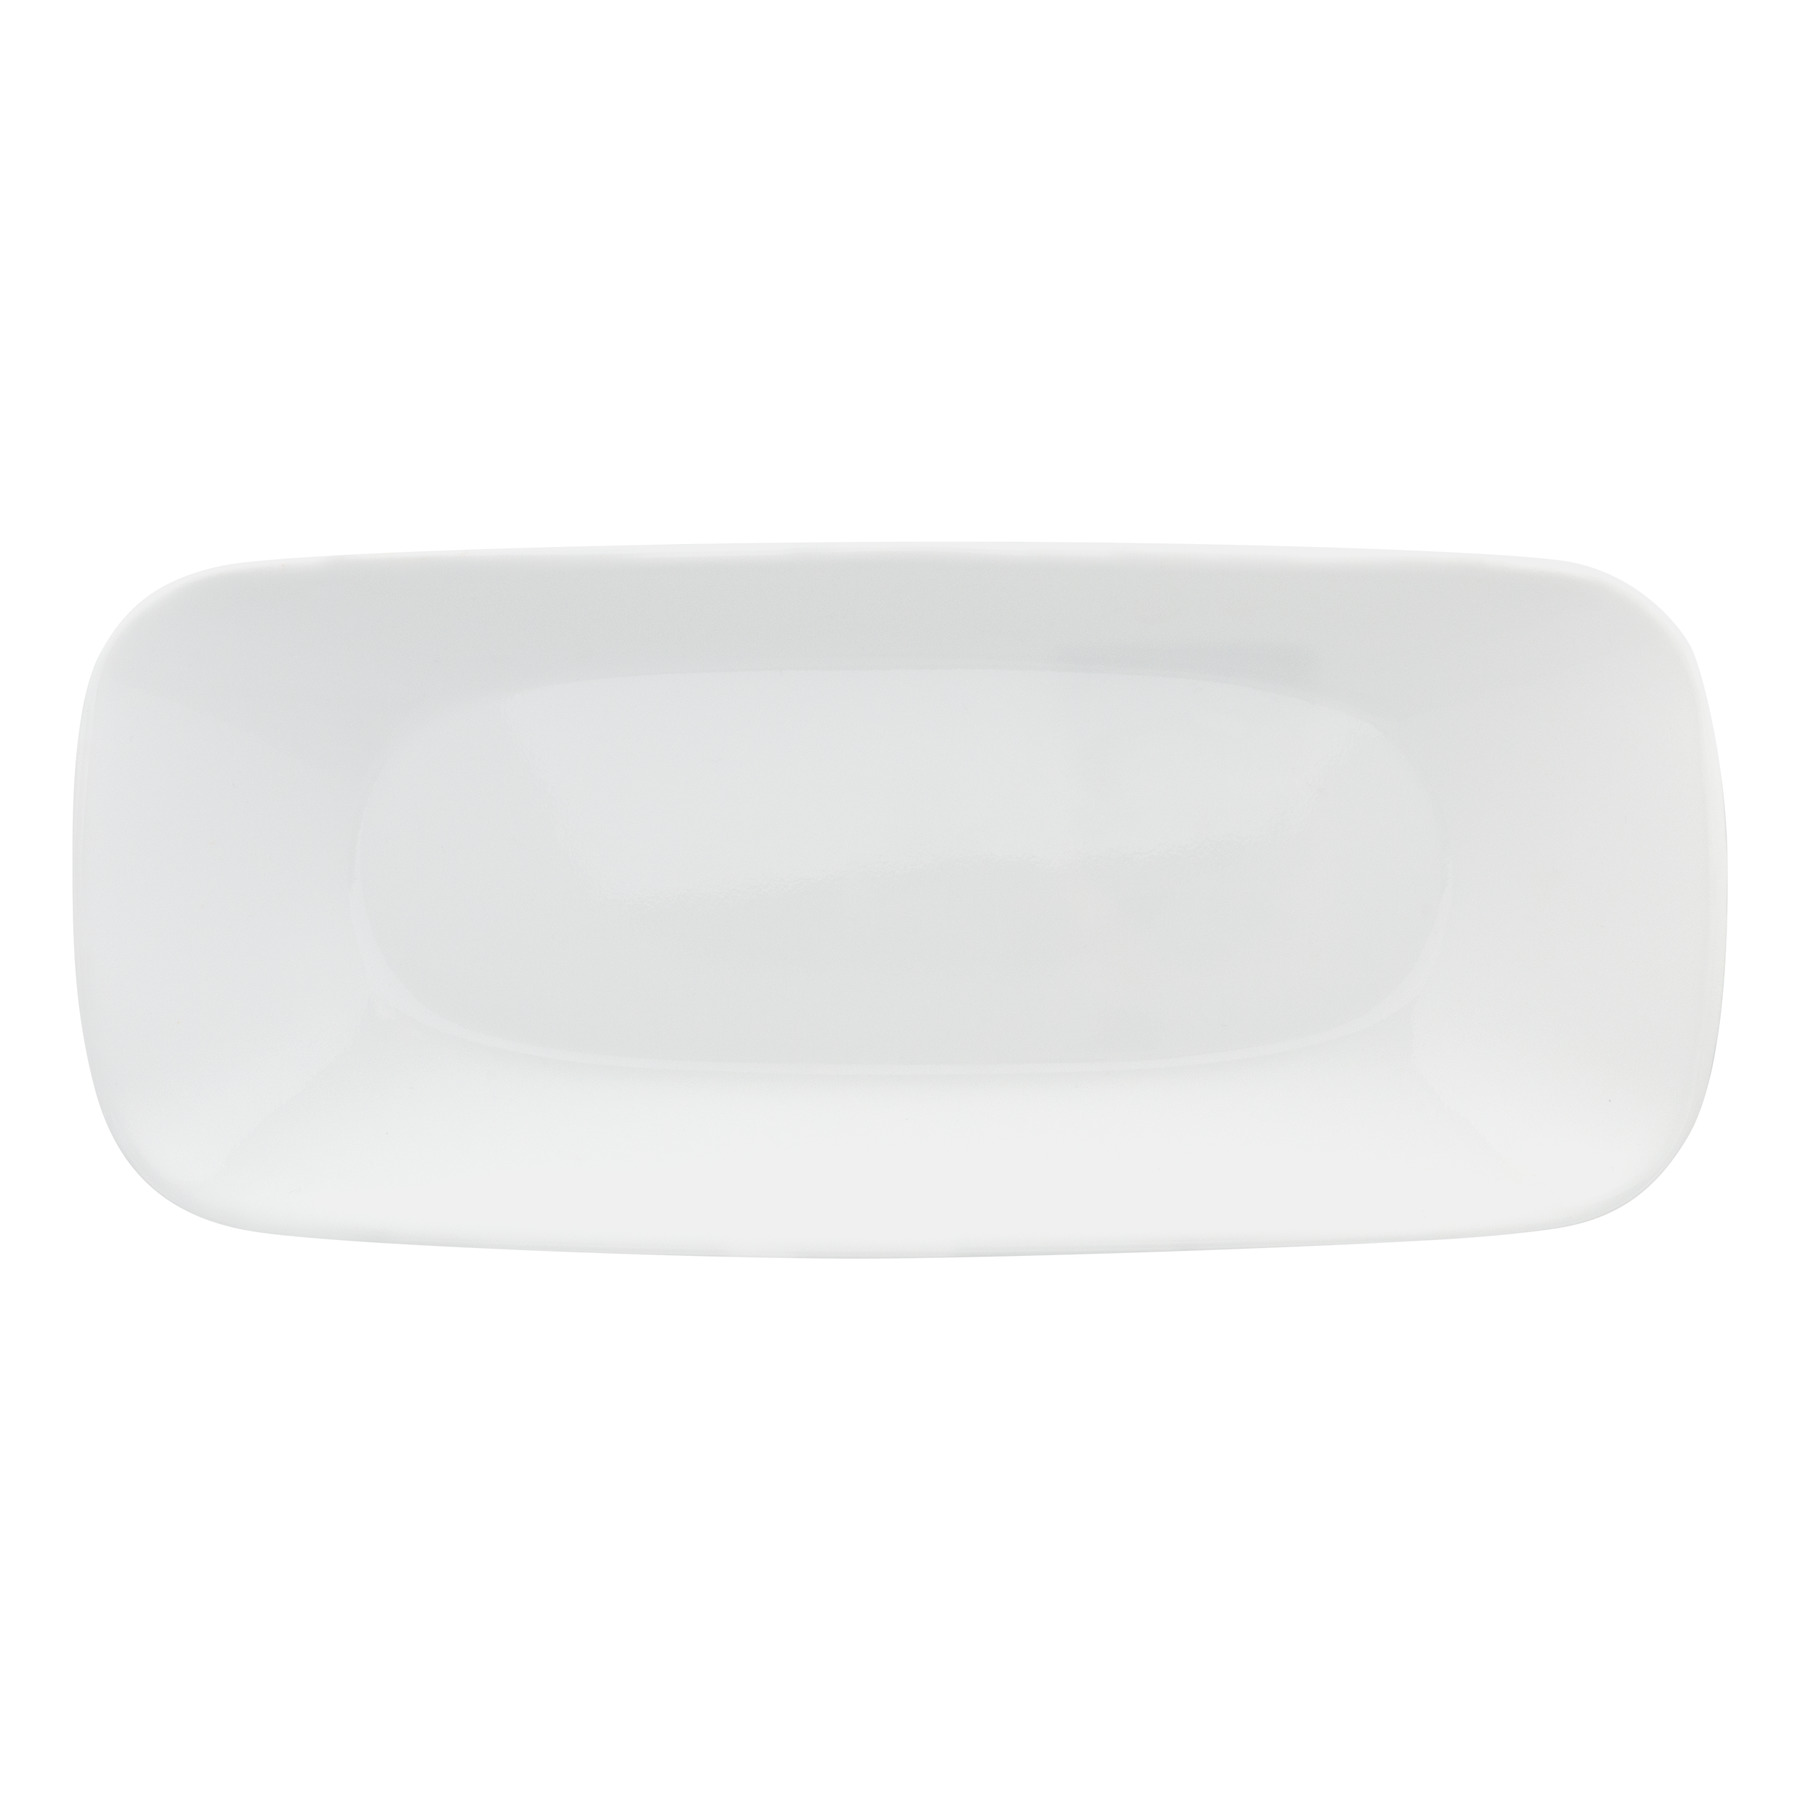 New Star Foodservice 26733 Oval Stainless Steel Sizzling Platter with Insulated